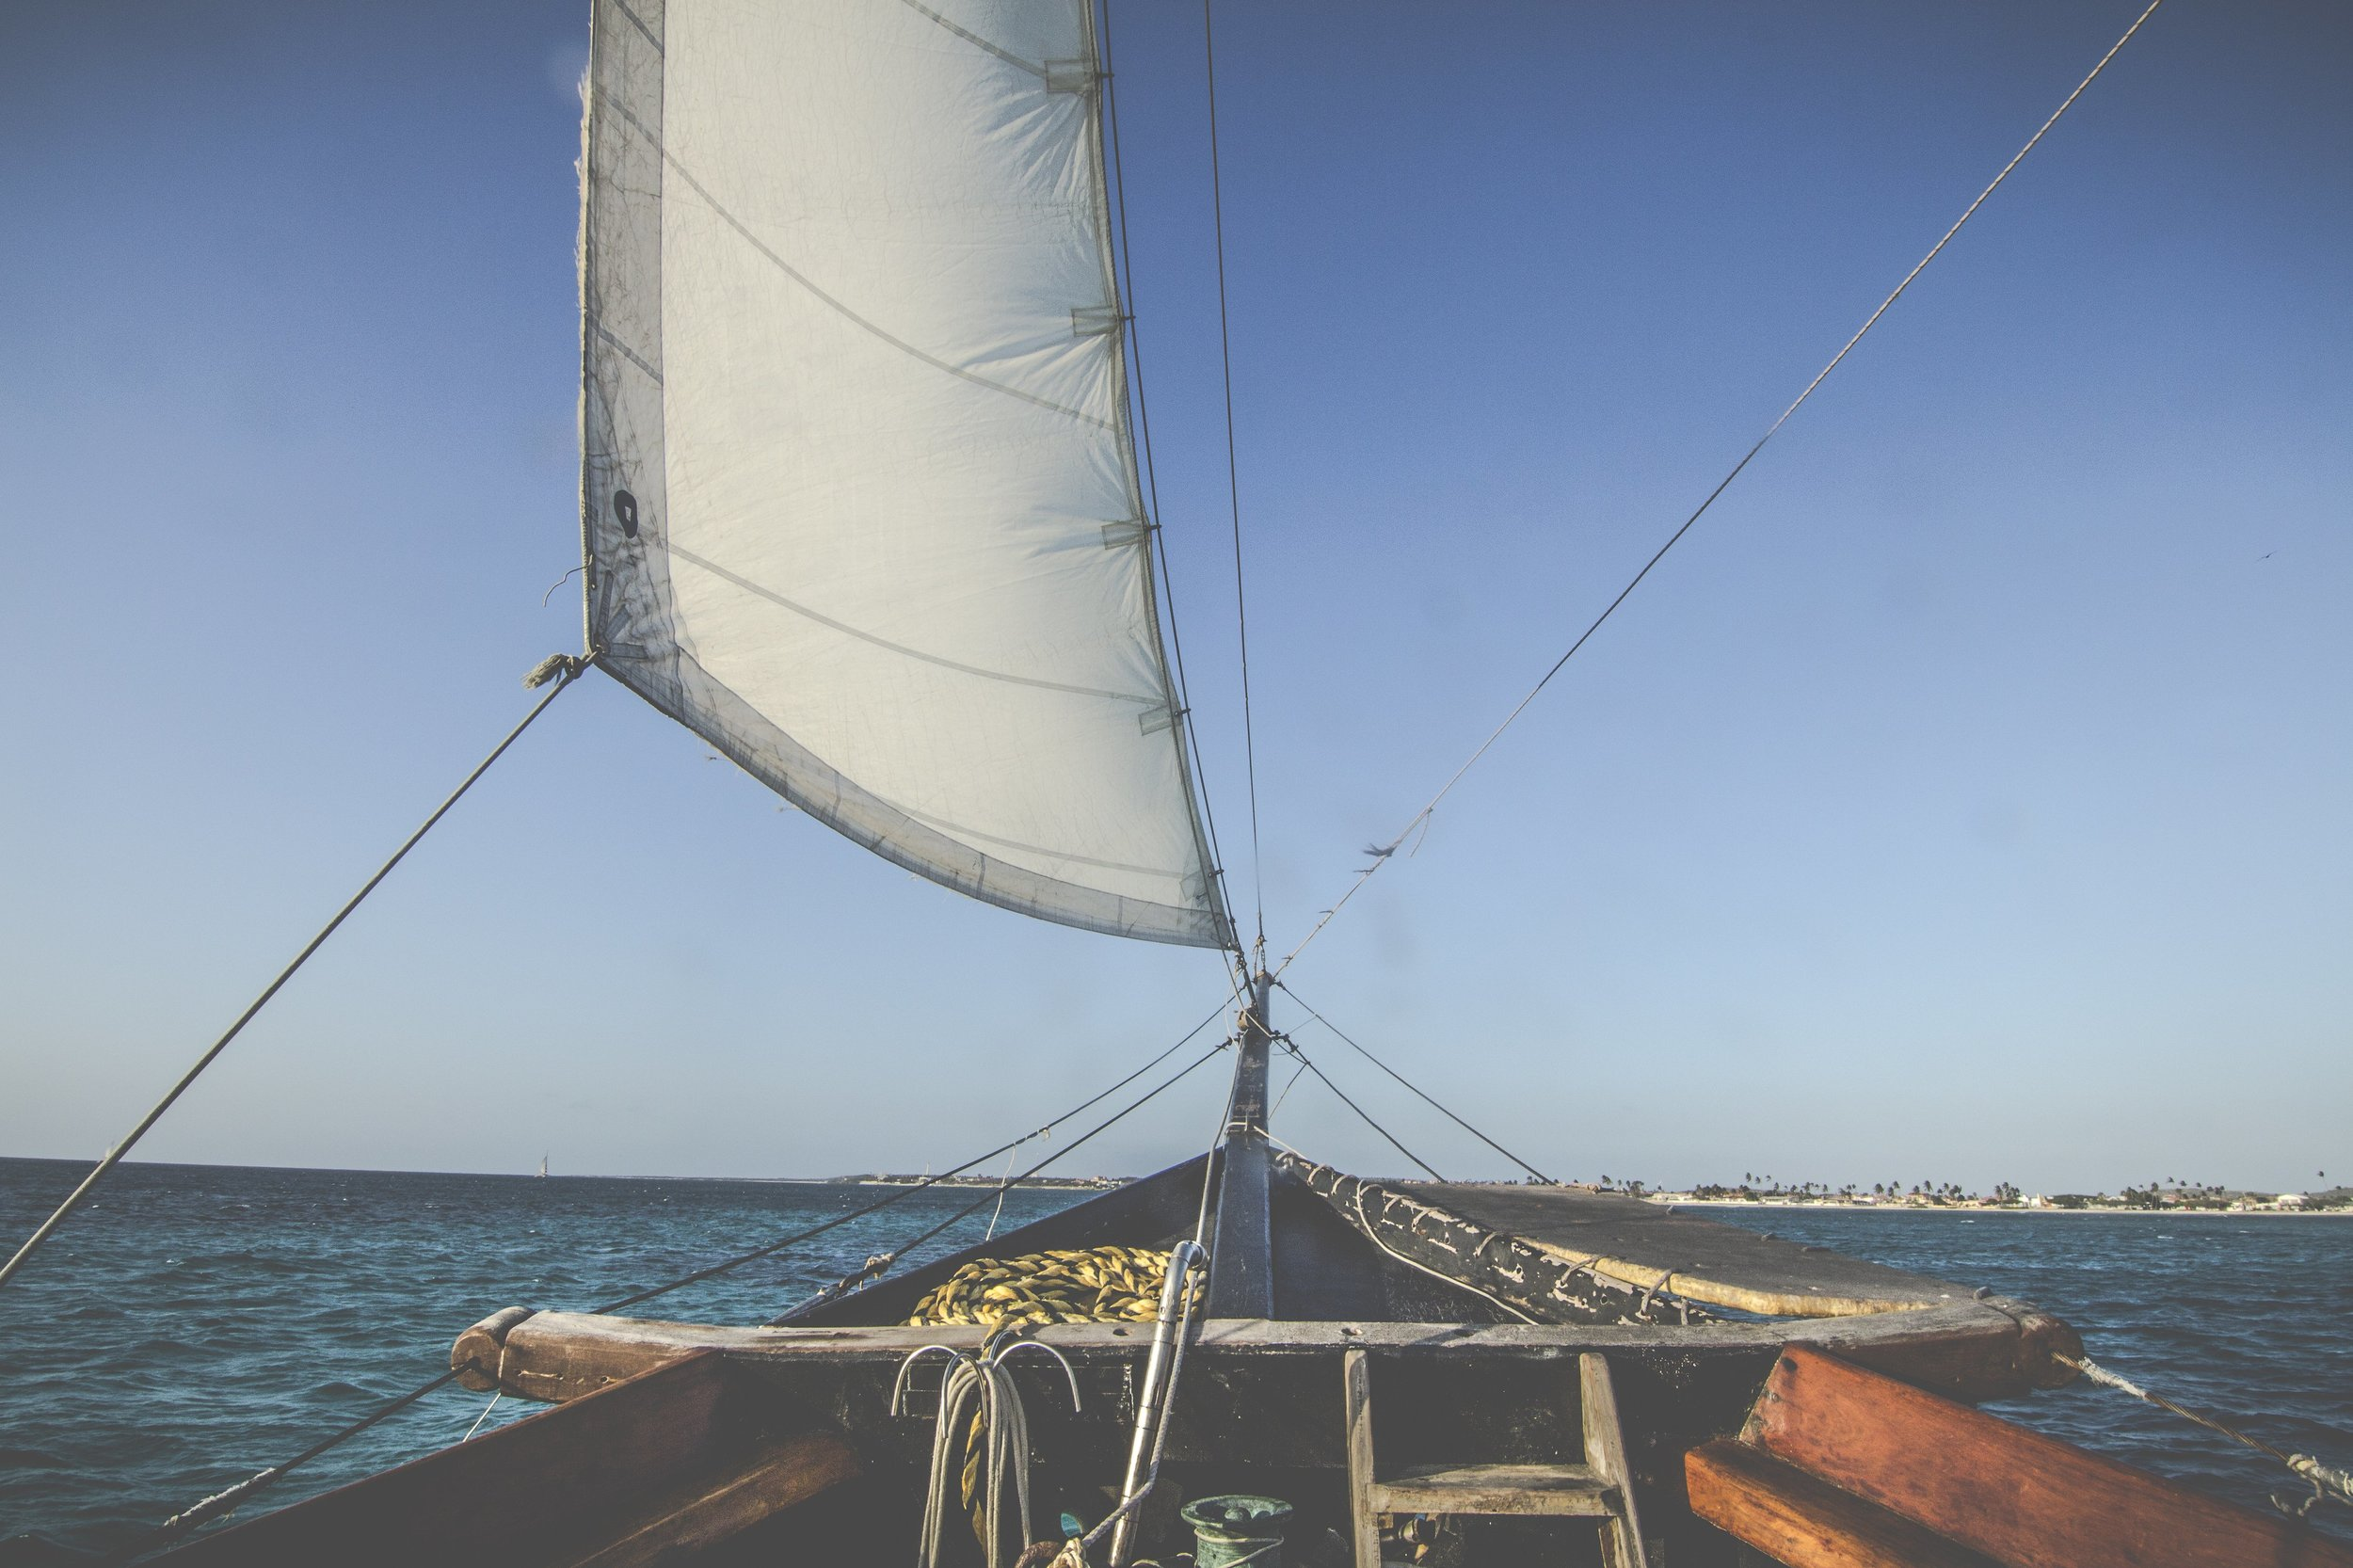 sailboat-bow-on-water_4460x4460.jpg